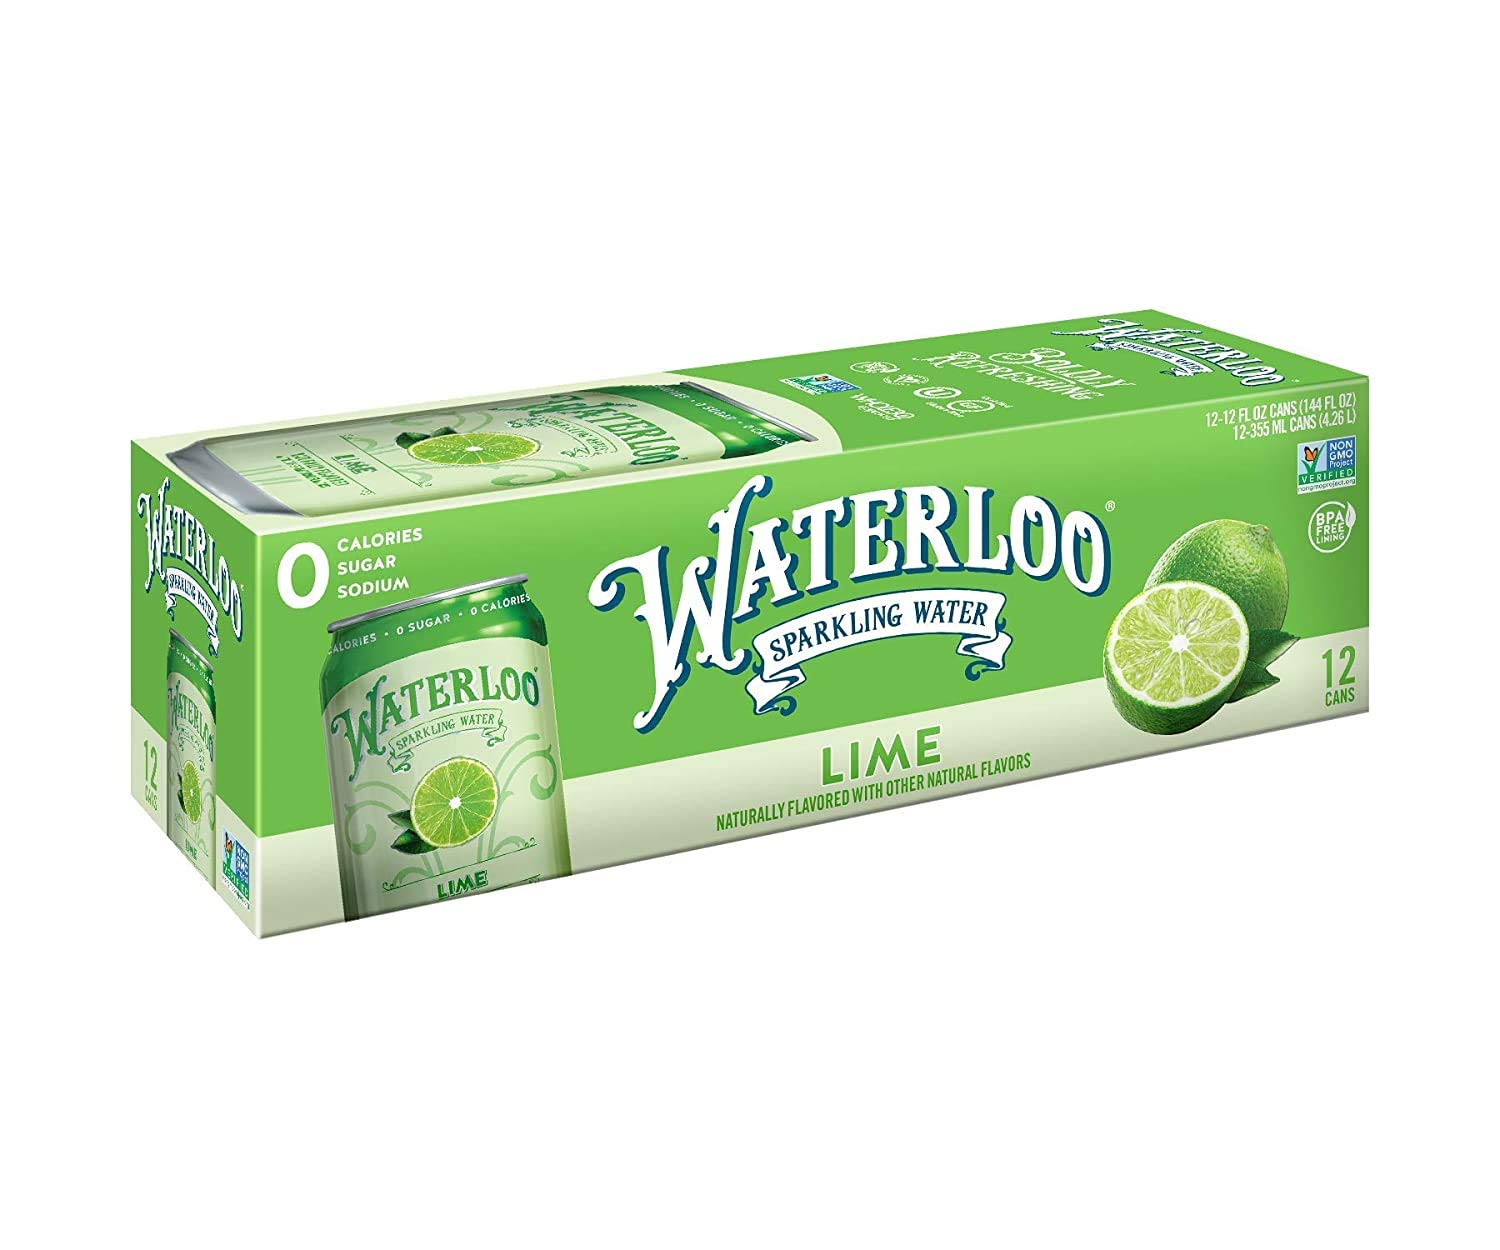 Waterloo Sparkling Water Lime Flavor Zero Calorie No Sugar 12oz Cans (Pack of 12), Fruit Flavored Sparkling Water, Naturally Flavored, Zero Calories, Zero Sugar, Zero Sodium